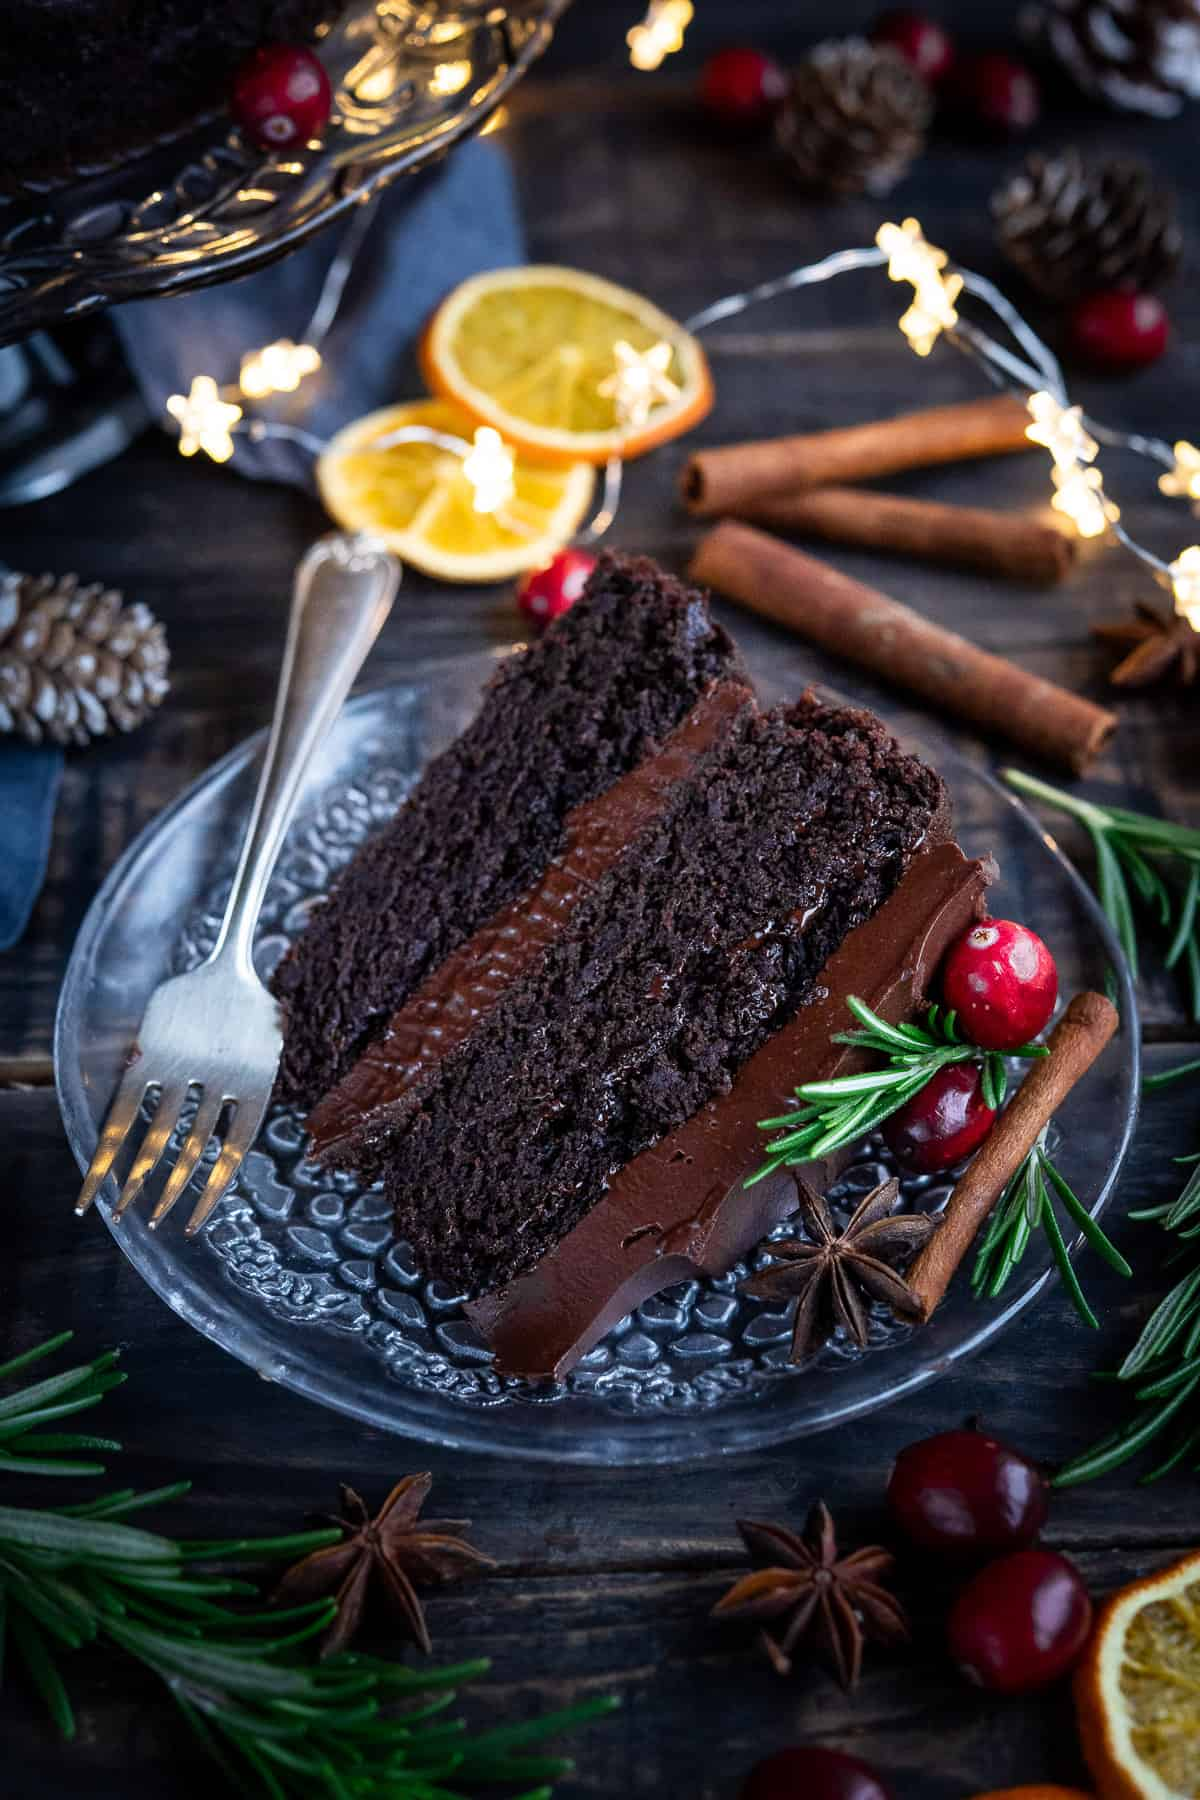 A slice of chocolate cake on a glass plate with a fork, surrounded by festive decorations.